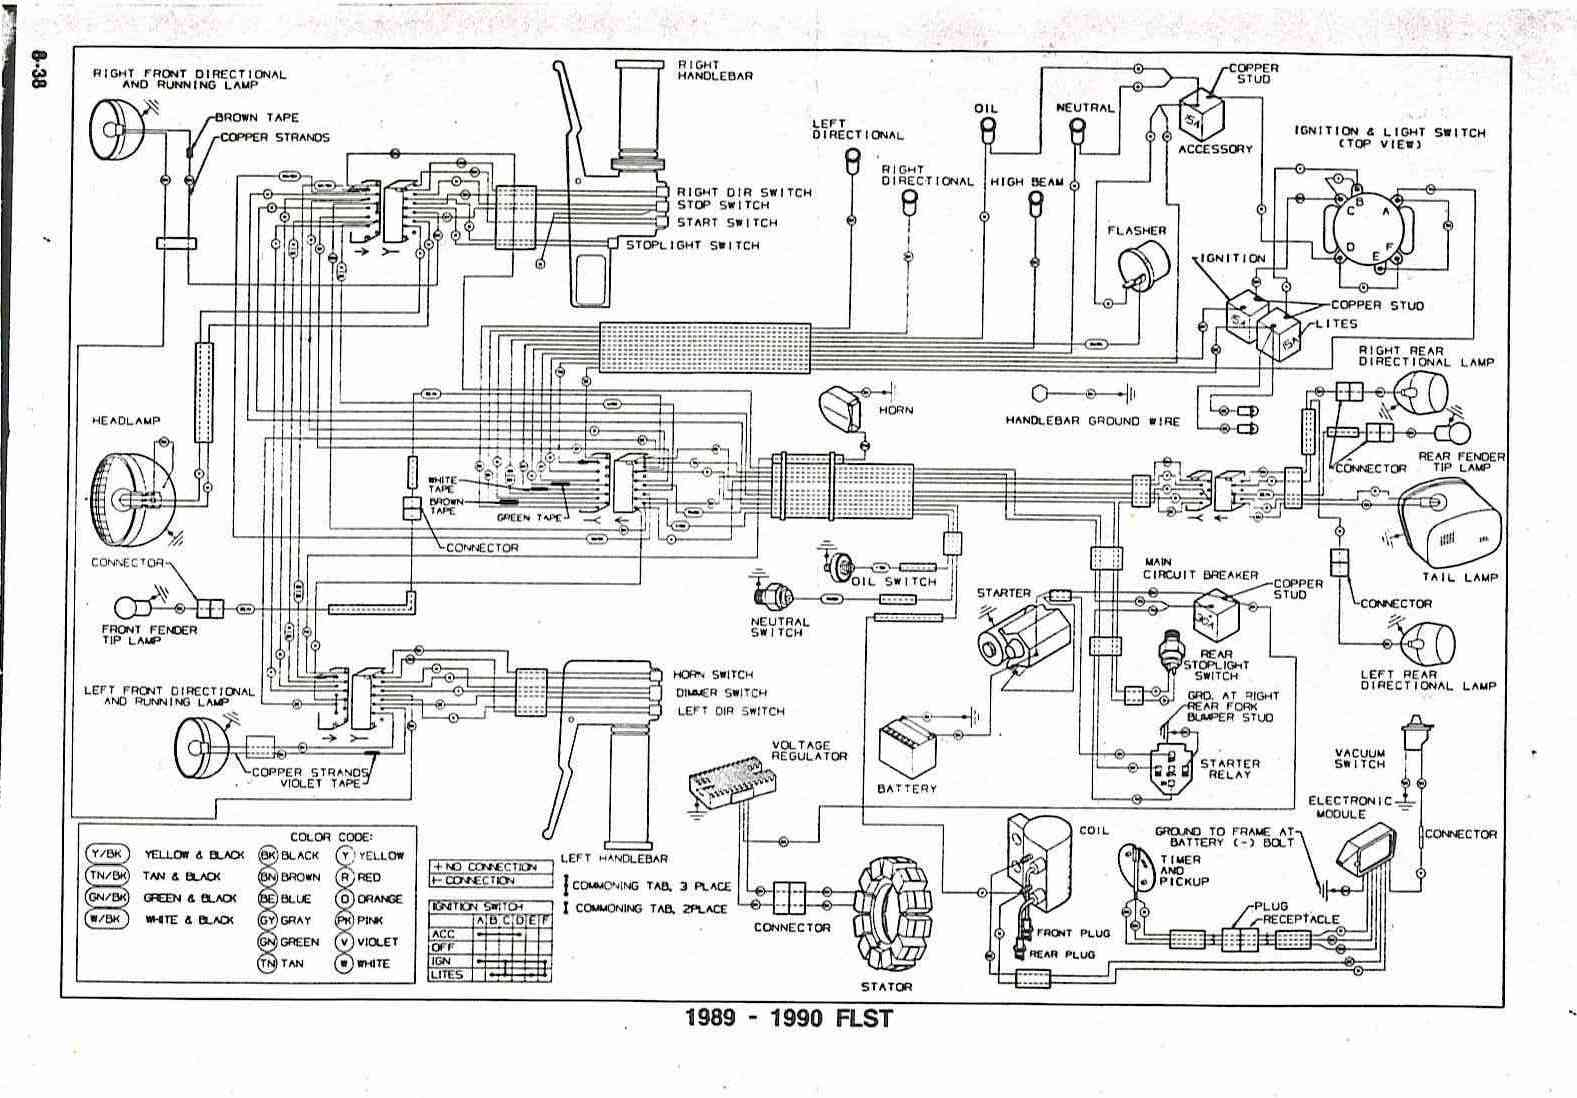 951HD_wireing_schematic2 harley wiring diagrams harley davidson golf cart schematics 1994 sportster 883 wiring diagram at n-0.co